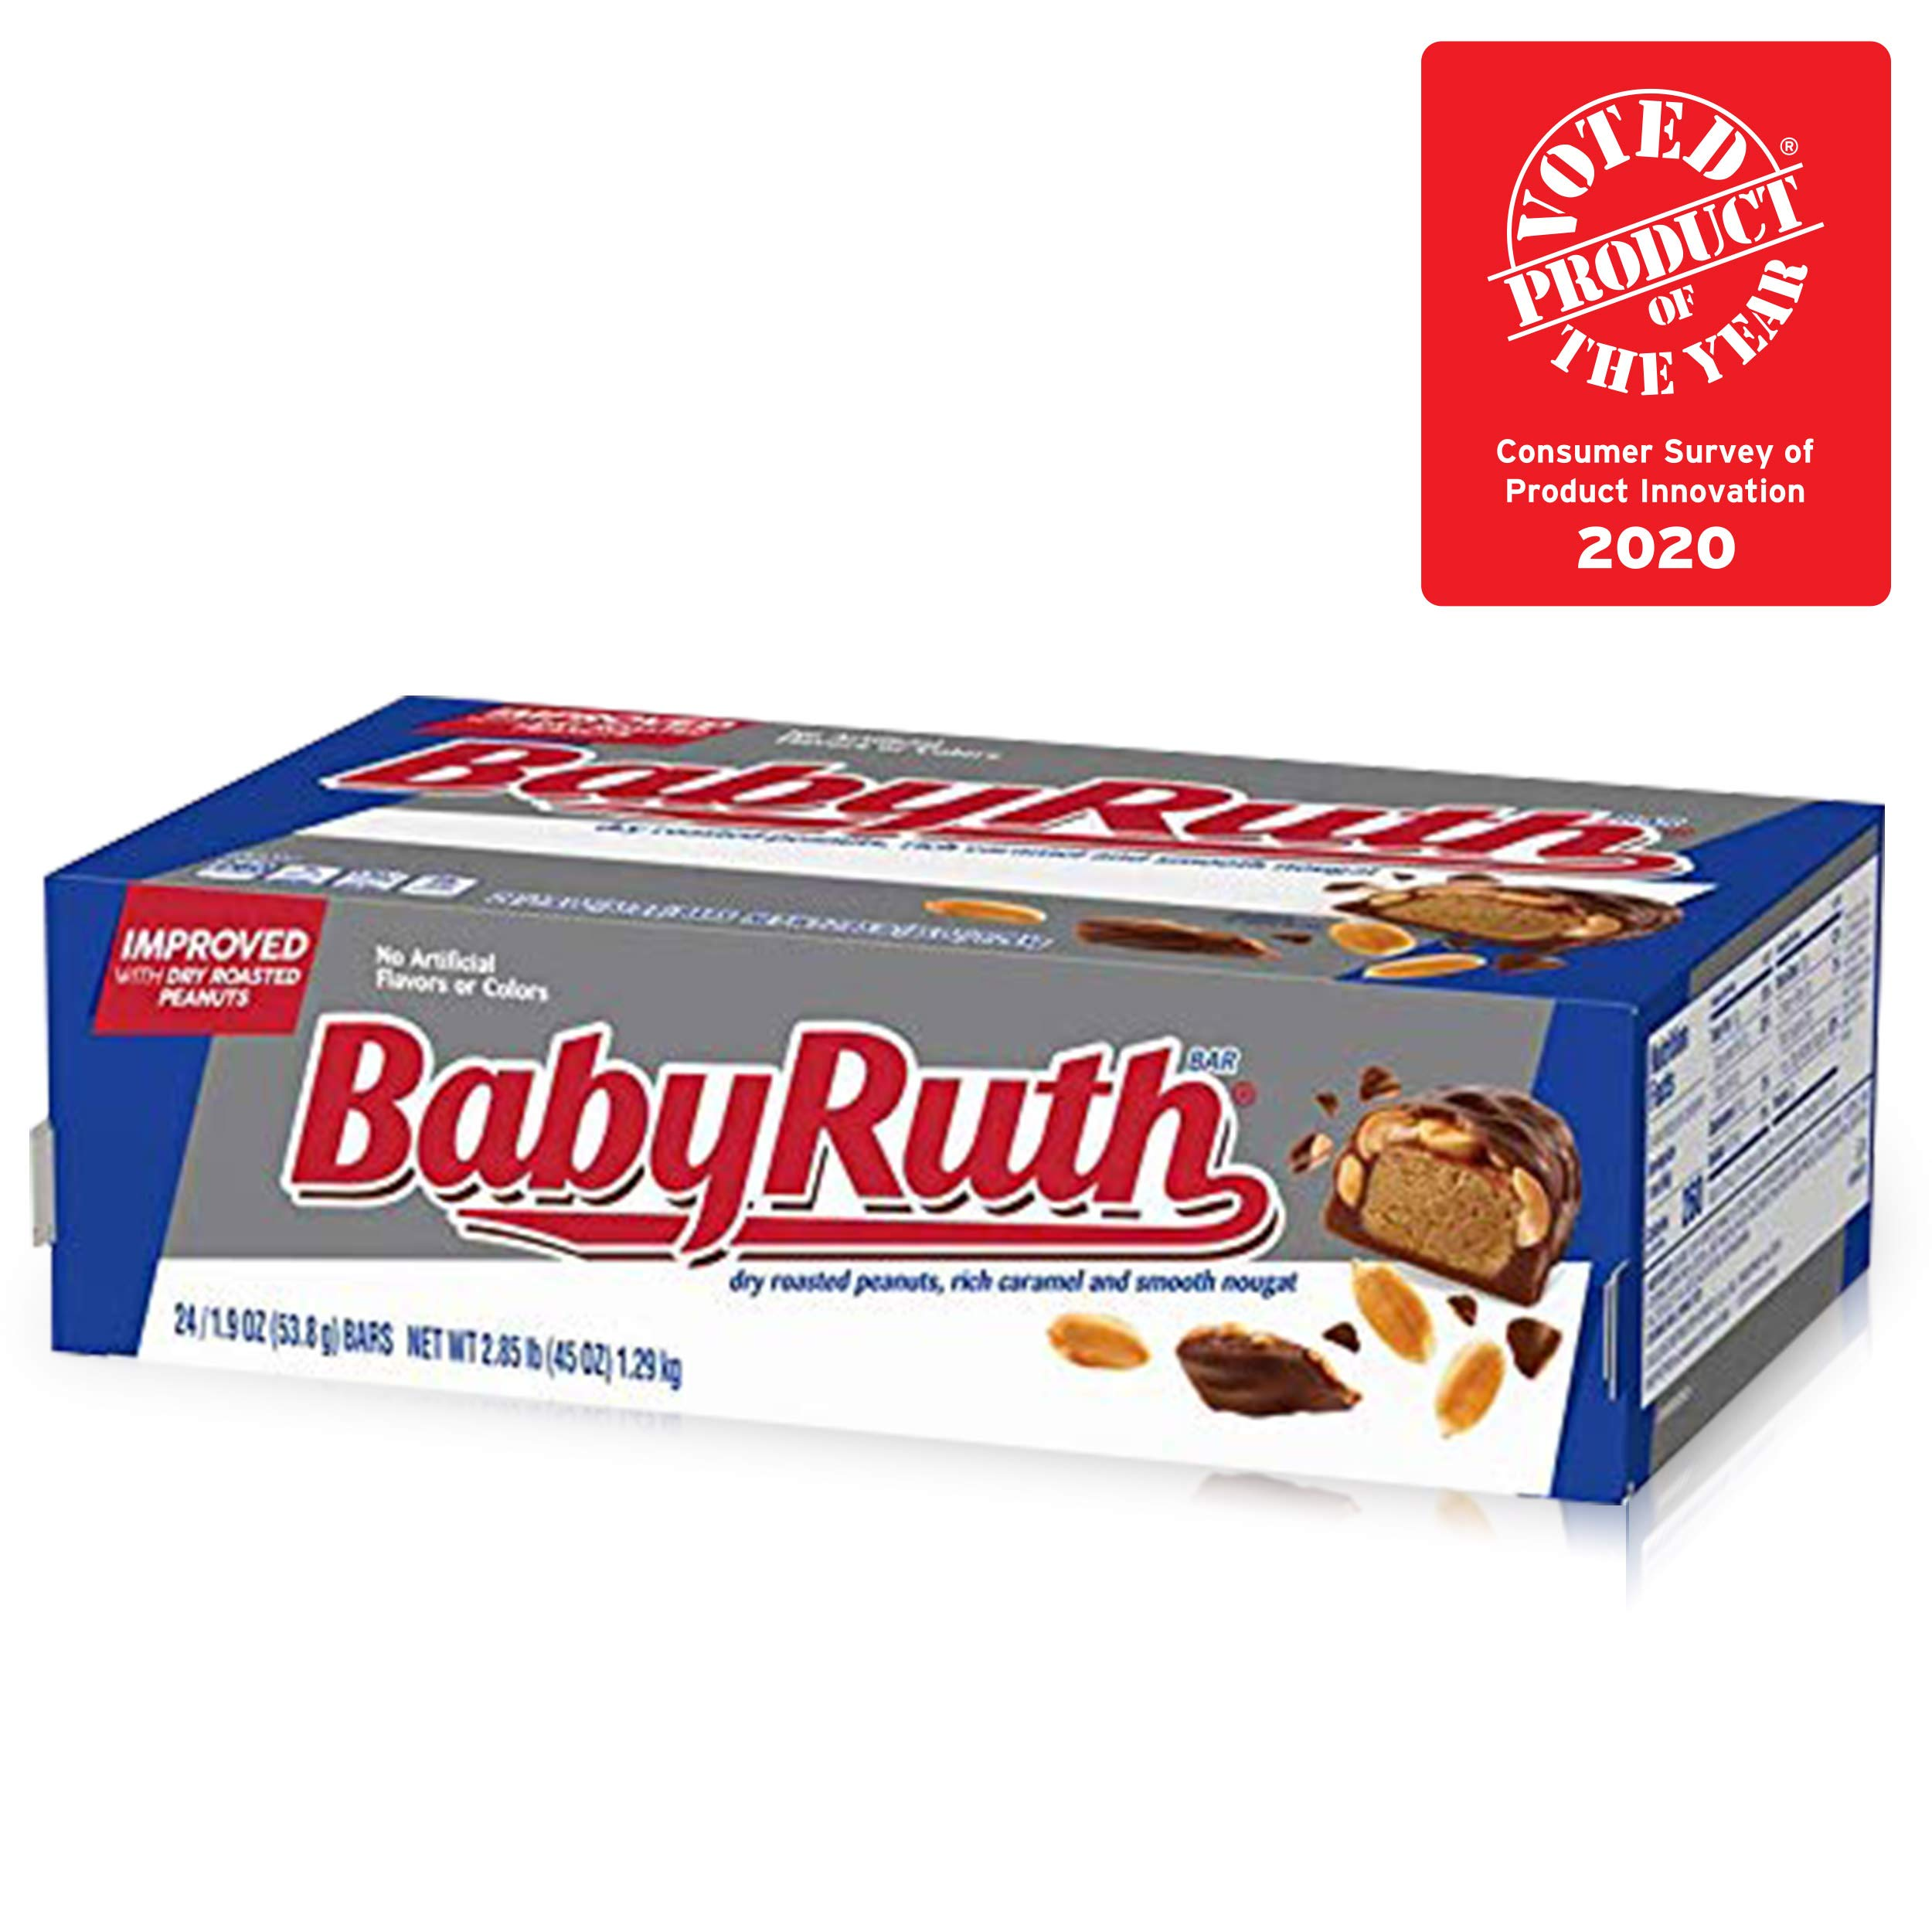 Baby Ruth Milk Chocolate Halloween Candy Bars, Full Size Bulk Ferrero Candy for Trick or Treat Bags, 1.9 oz (Pack of 24)